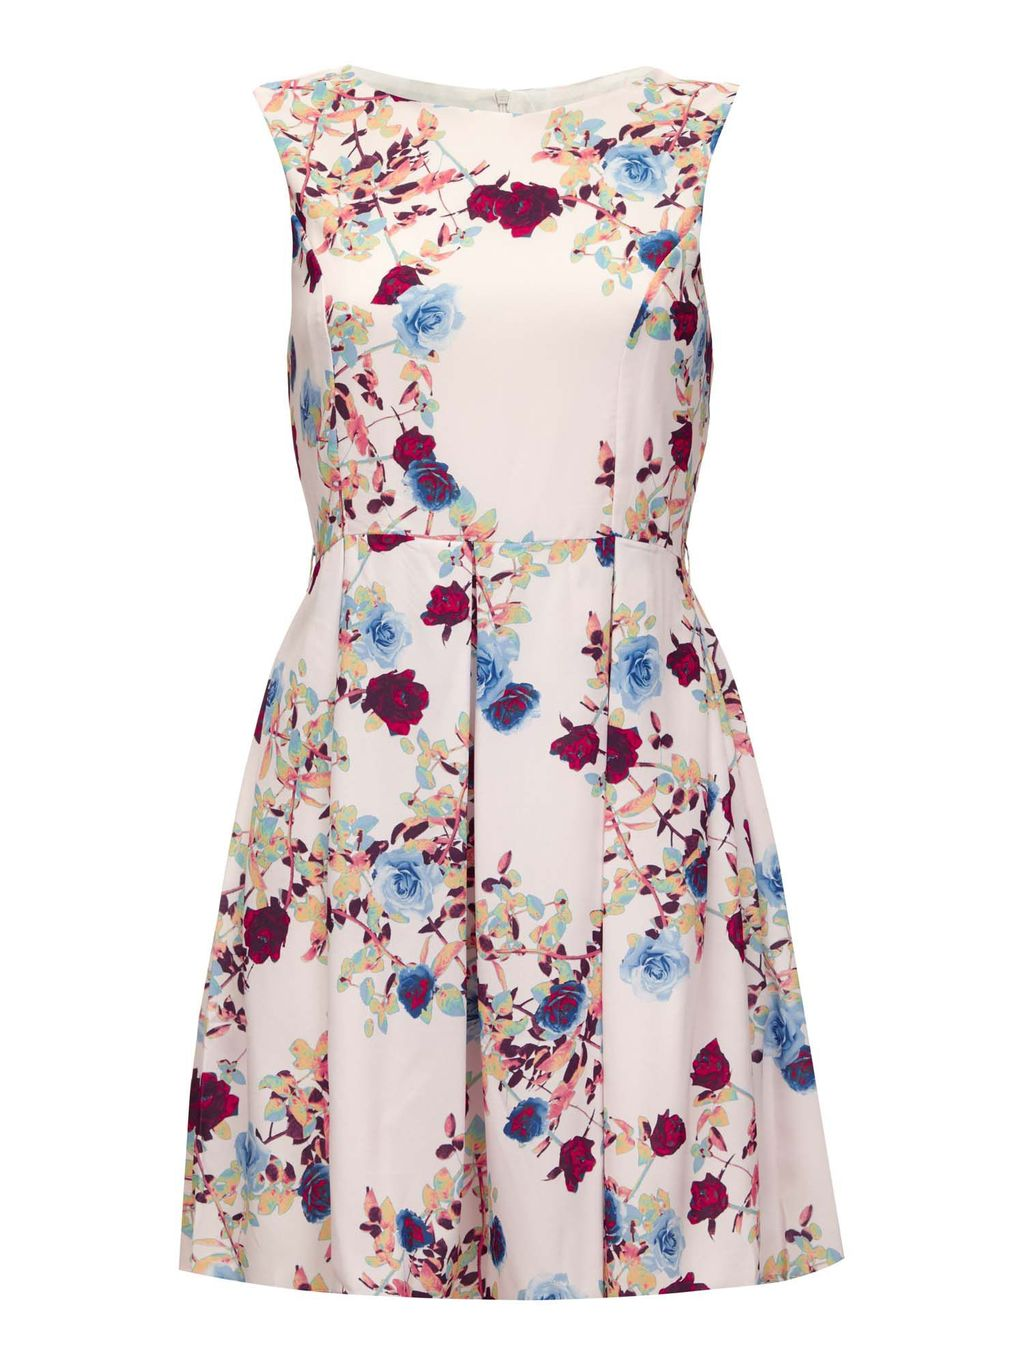 Rose And Leaf Print Occasion Dress, Cream - length: mid thigh; neckline: round neck; sleeve style: sleeveless; predominant colour: blush; occasions: casual; fit: fitted at waist & bust; style: fit & flare; fibres: polyester/polyamide - 100%; sleeve length: sleeveless; pattern type: fabric; pattern size: standard; pattern: florals; texture group: other - light to midweight; multicoloured: multicoloured; season: s/s 2016; wardrobe: highlight